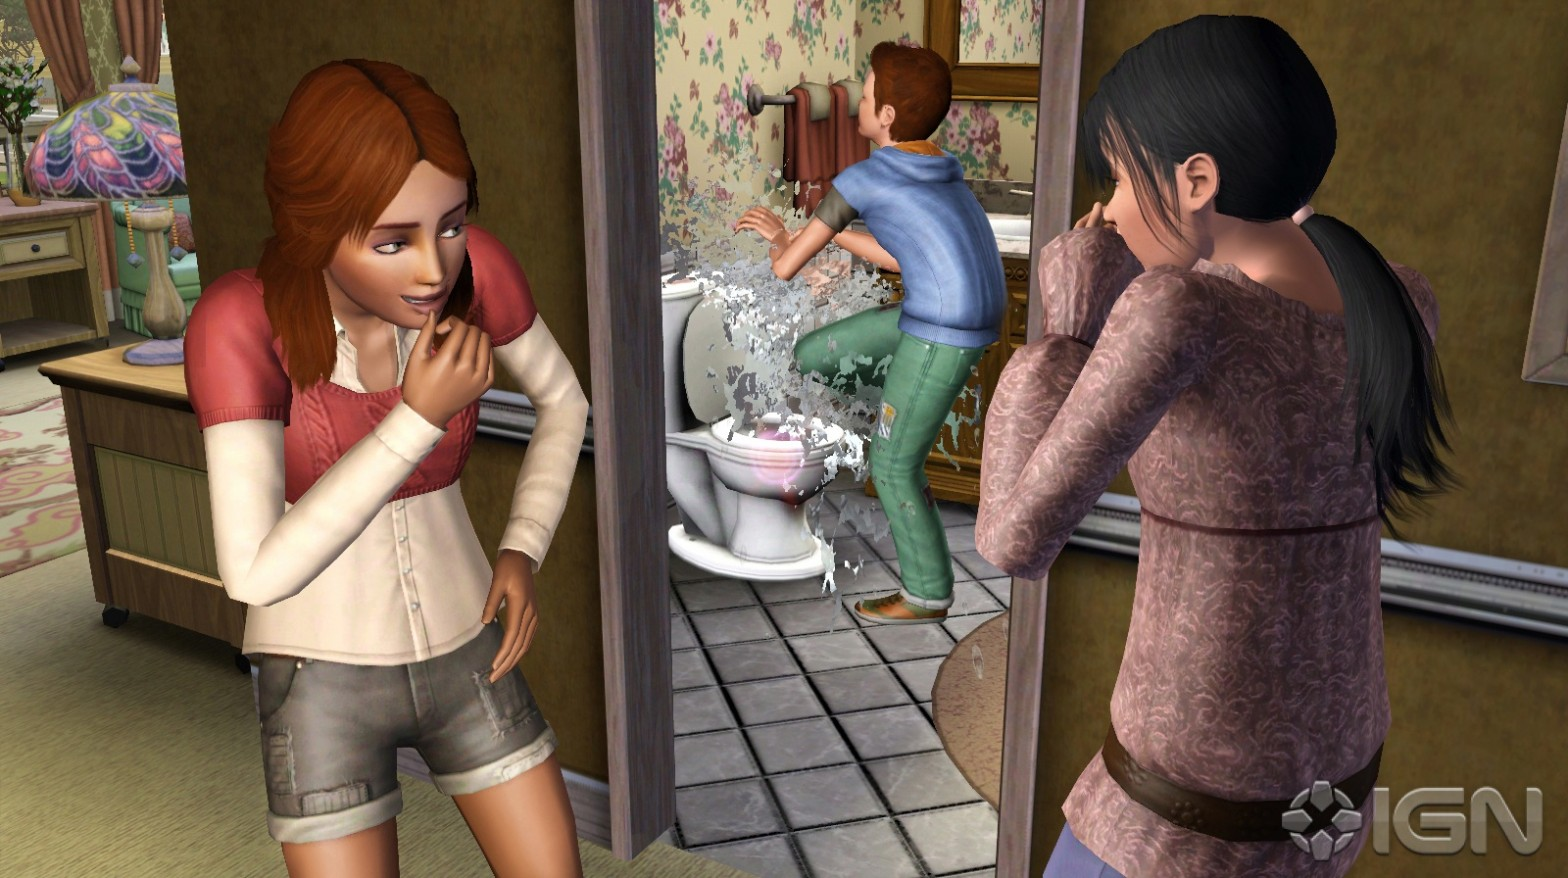 The Sims 3 Generations Free PC Game Setup